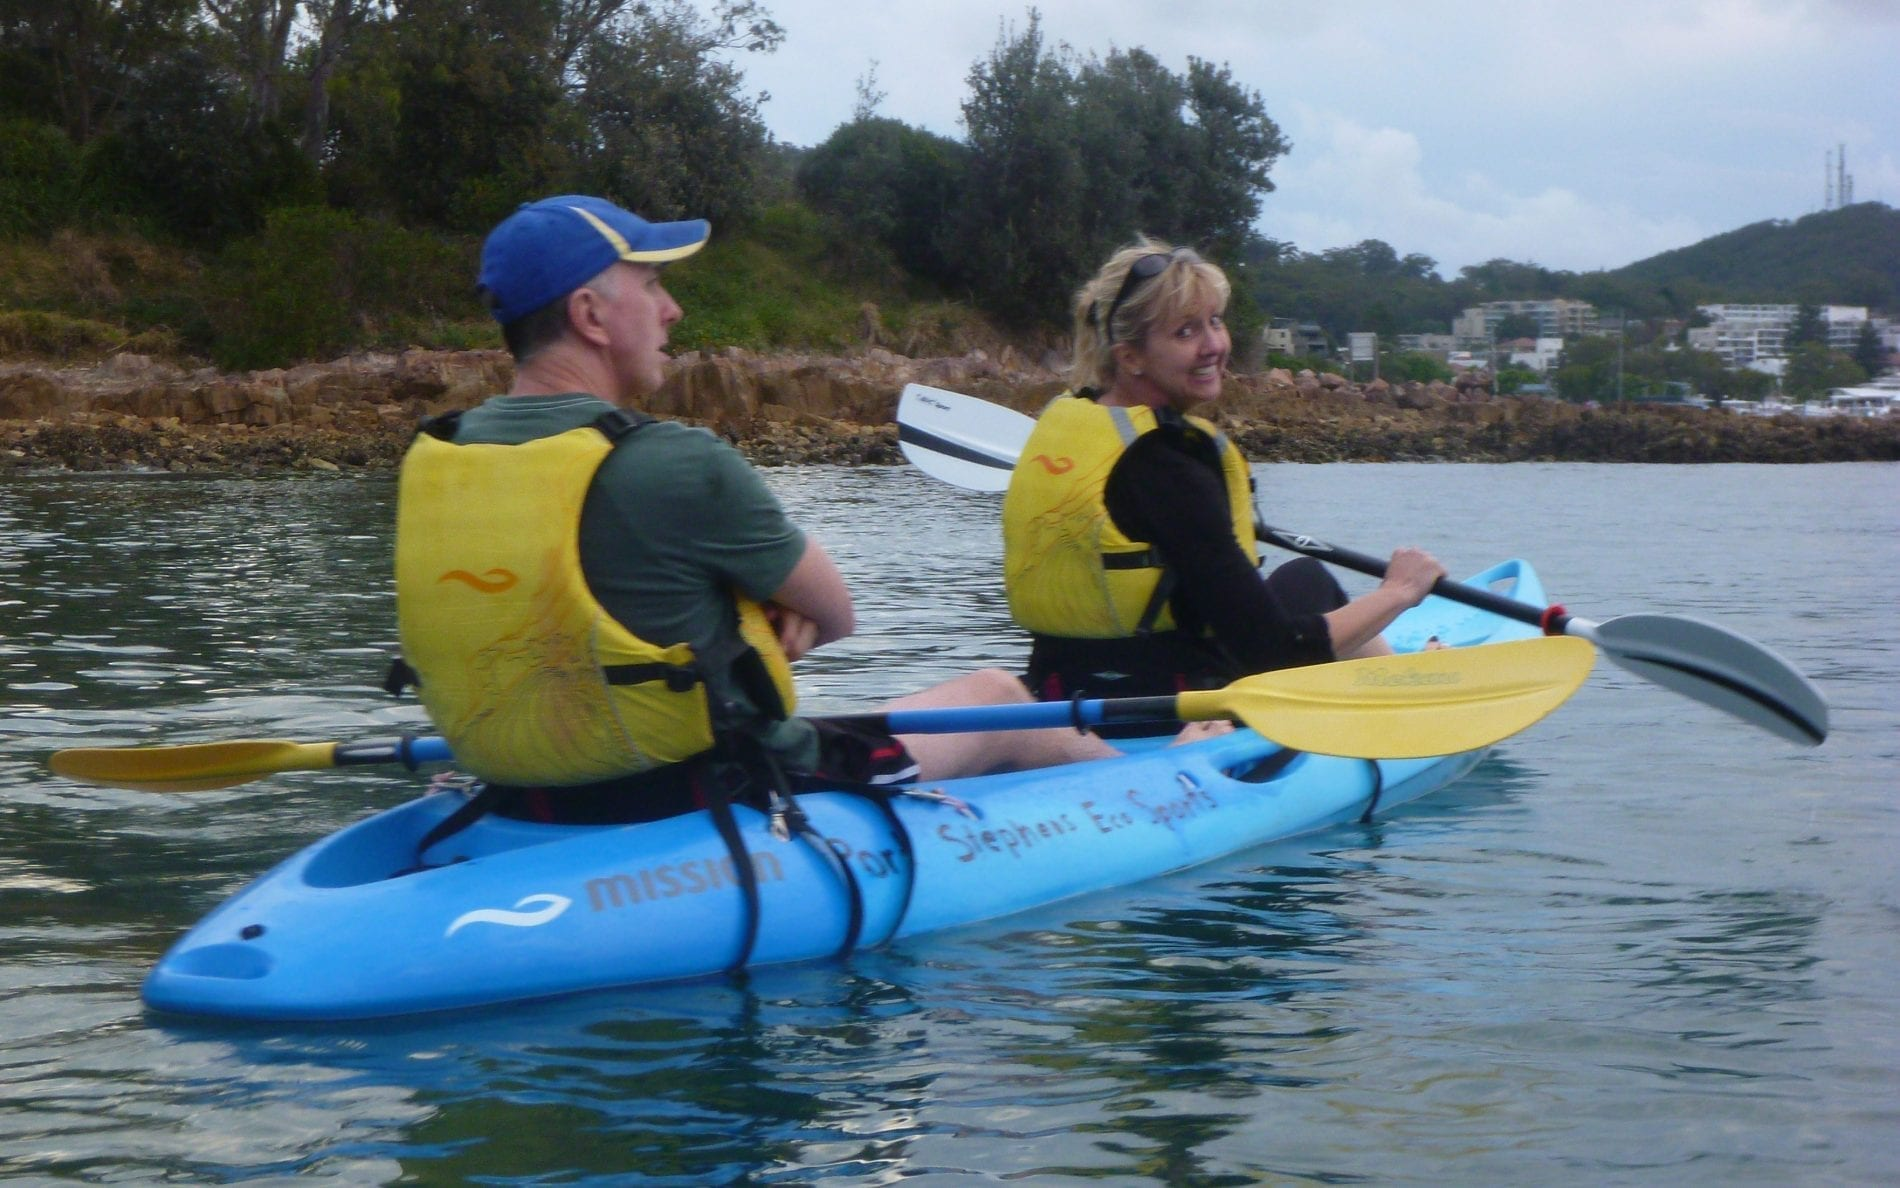 Jenny Kayaking with her husband